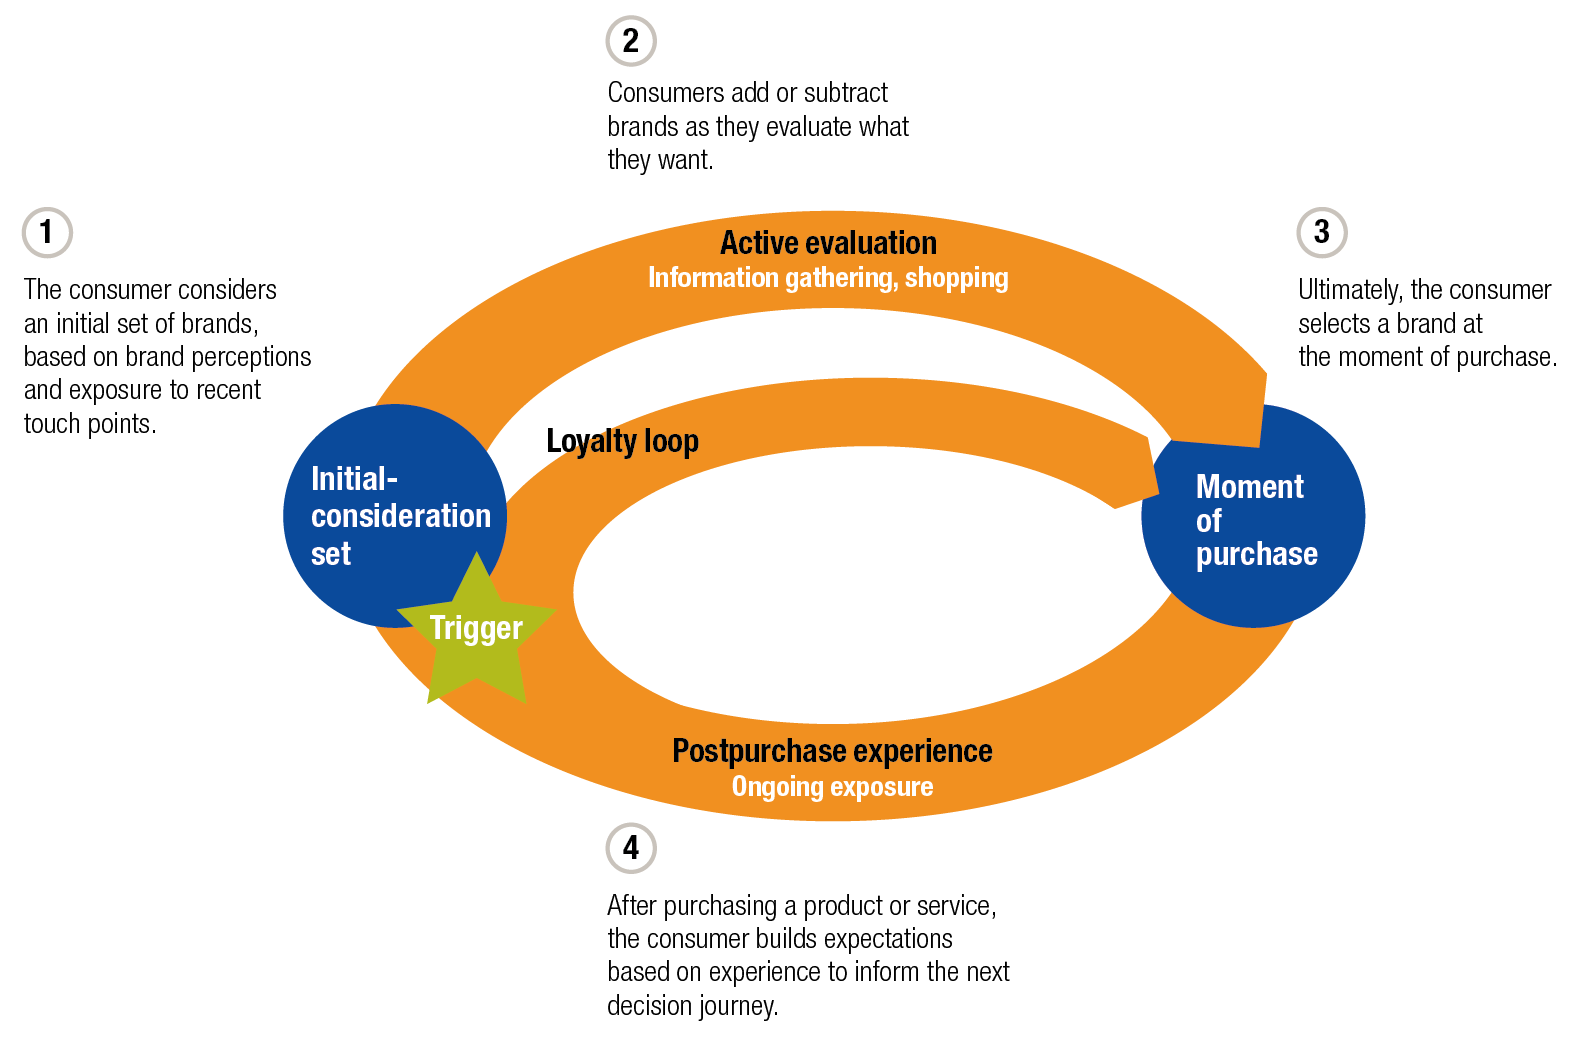 consumer journey as a loop